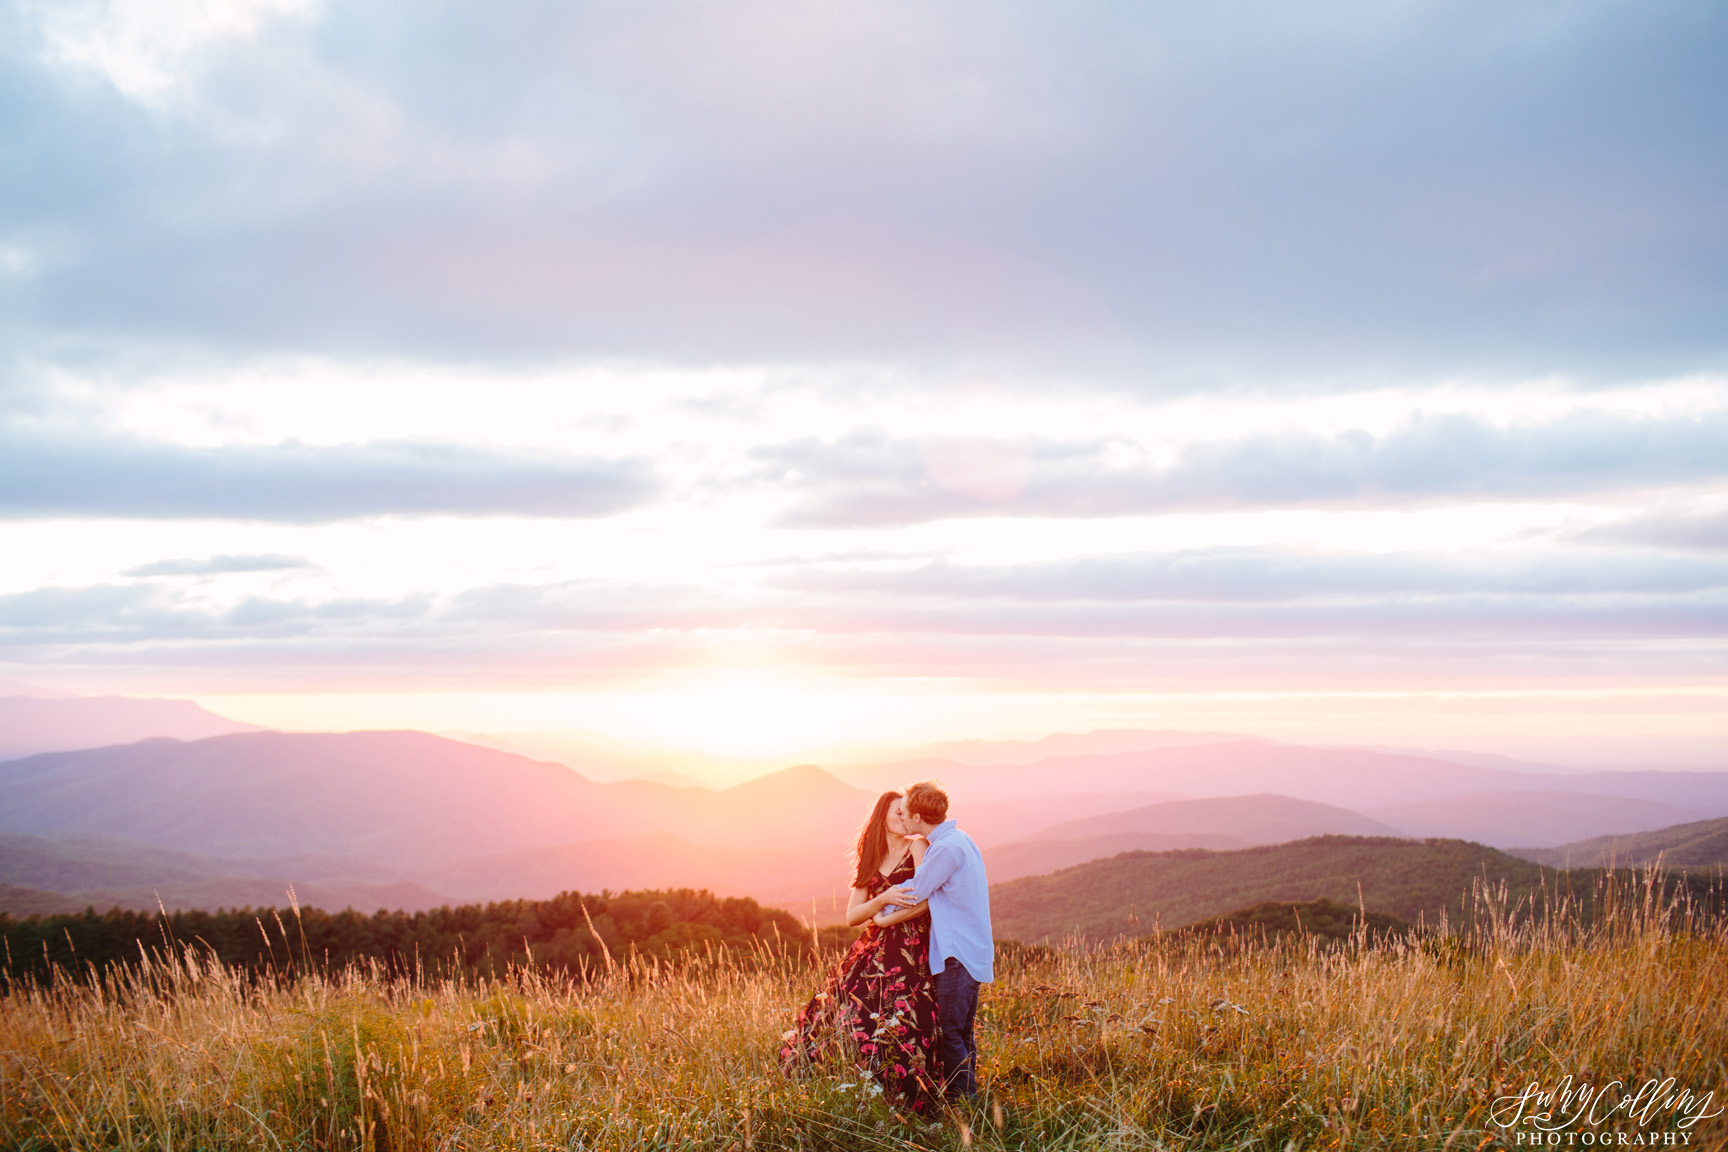 poses, couples, outdoor, max patch, Knoxville, Tennessee, engagement, sunset, evening, love, vibrant, colorful, bright, creative, romantic, natural, light and airy, natural light, passion, inspiration, intimate, outfits, fountain, woods, field, sunrise, windy, North Carolina, kiss